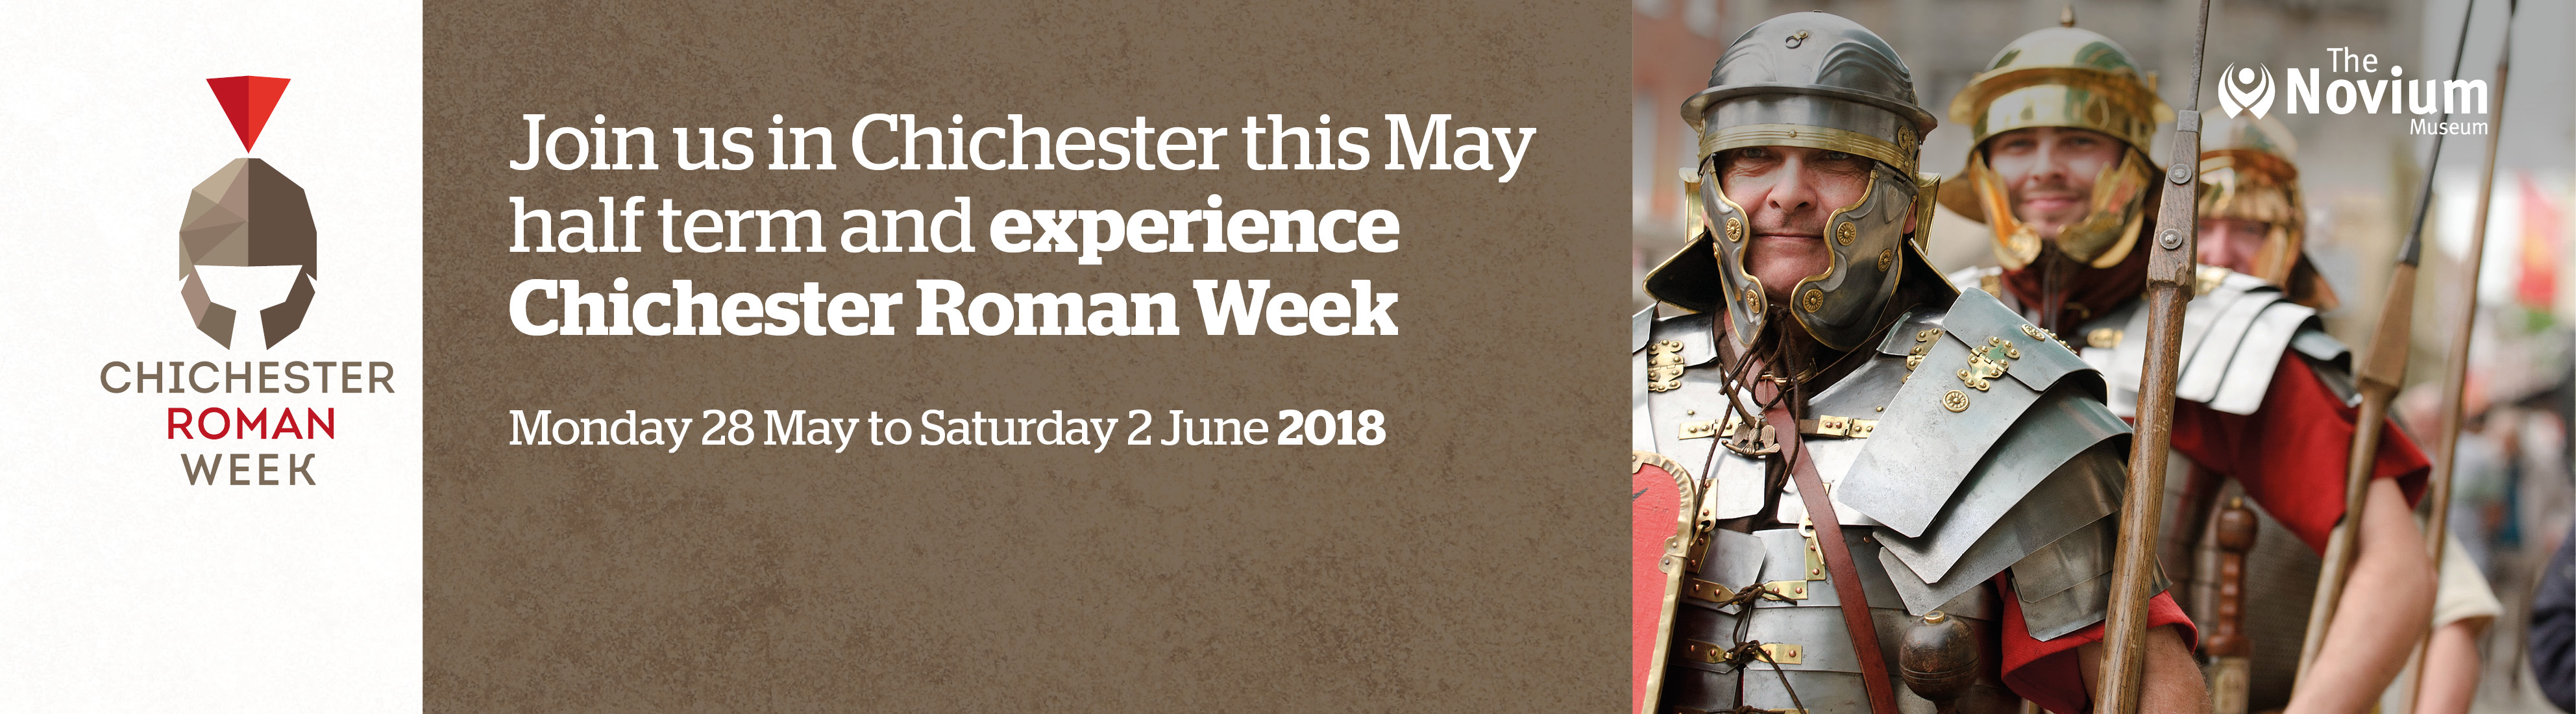 Chichester roman week 2018